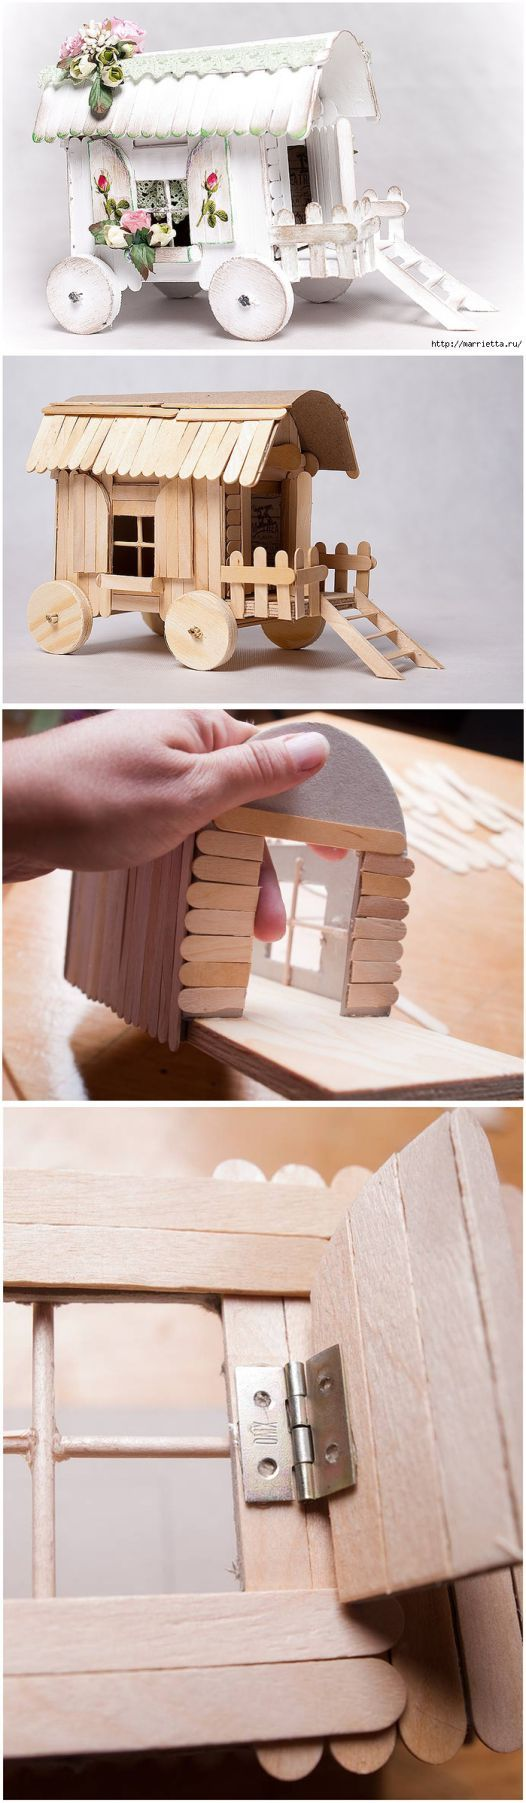 Popsicle stick church craft - Find This Pin And More On Popsicle Sticks And Clothespins